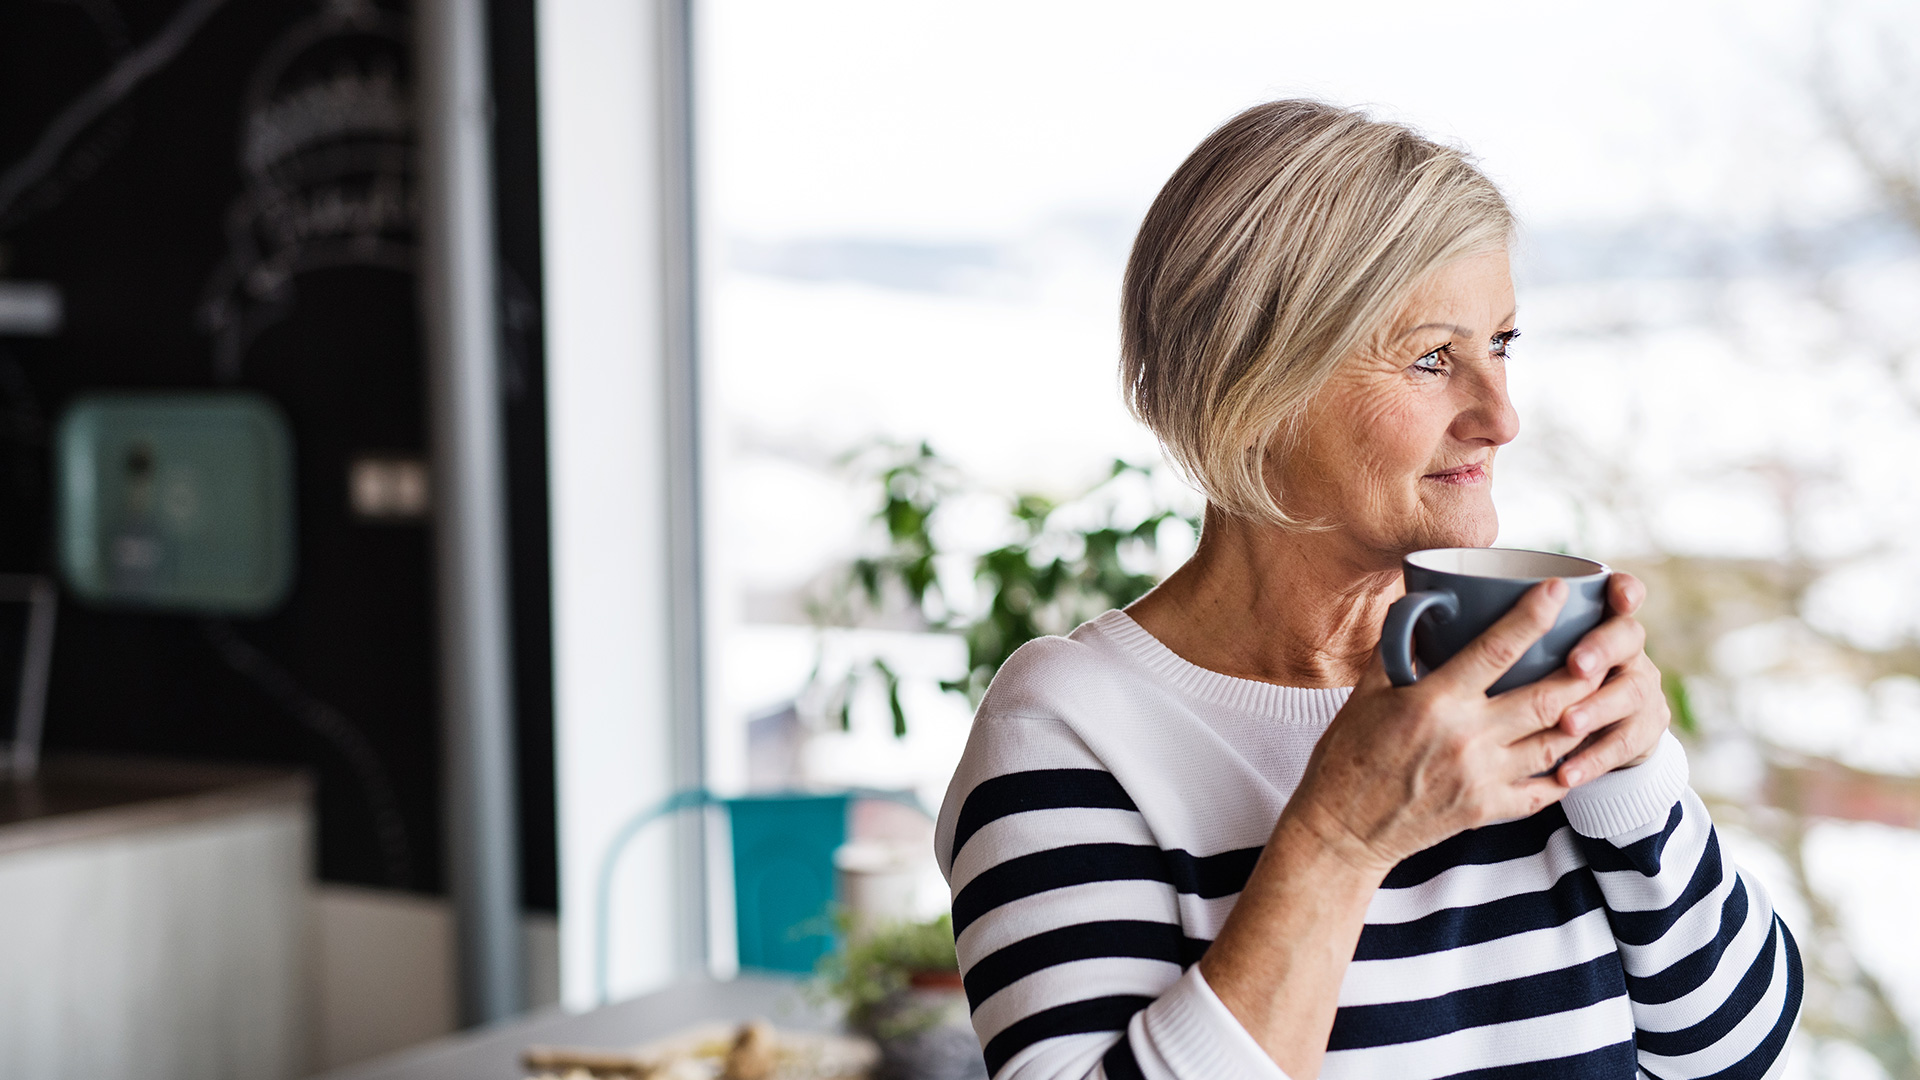 Recent trends show that Alzheimer's disease is affecting women more than men. We asked Atrium Health experts about the role diet and lifestyle might play in this trend.